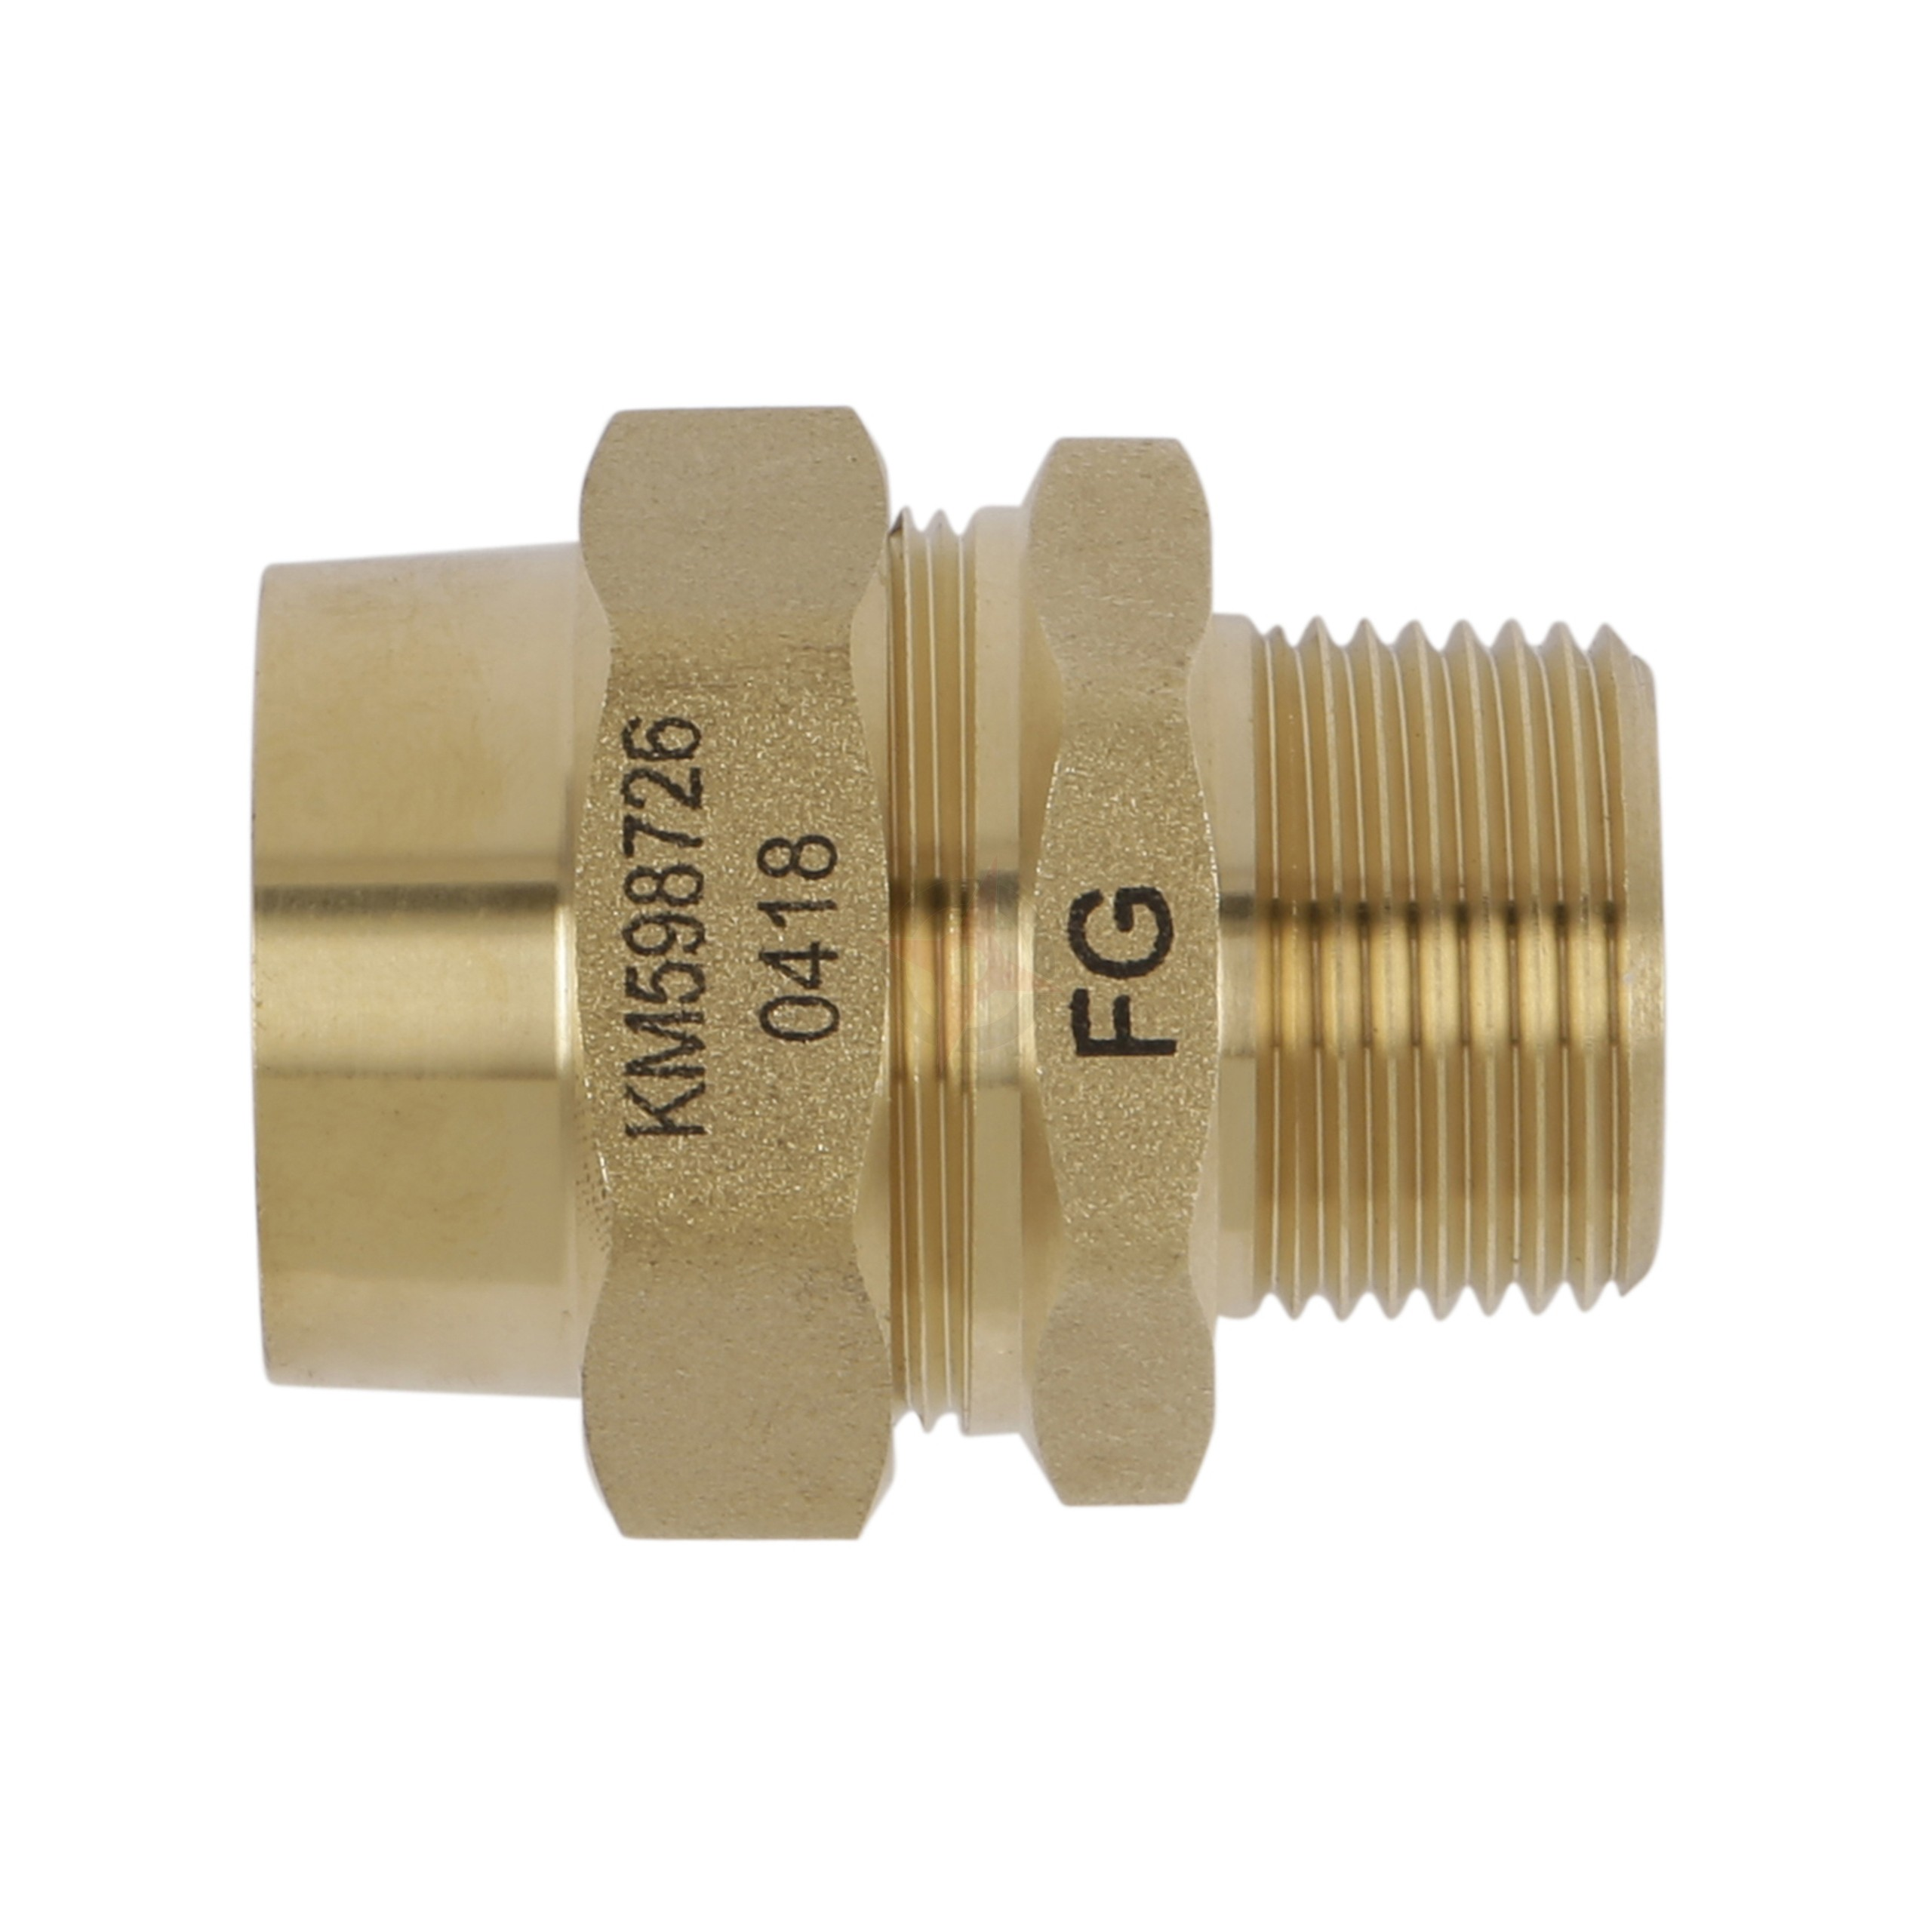 FlexiGas 15mm x 1 by 2 Inch  Male Straight Connector 2.jpg